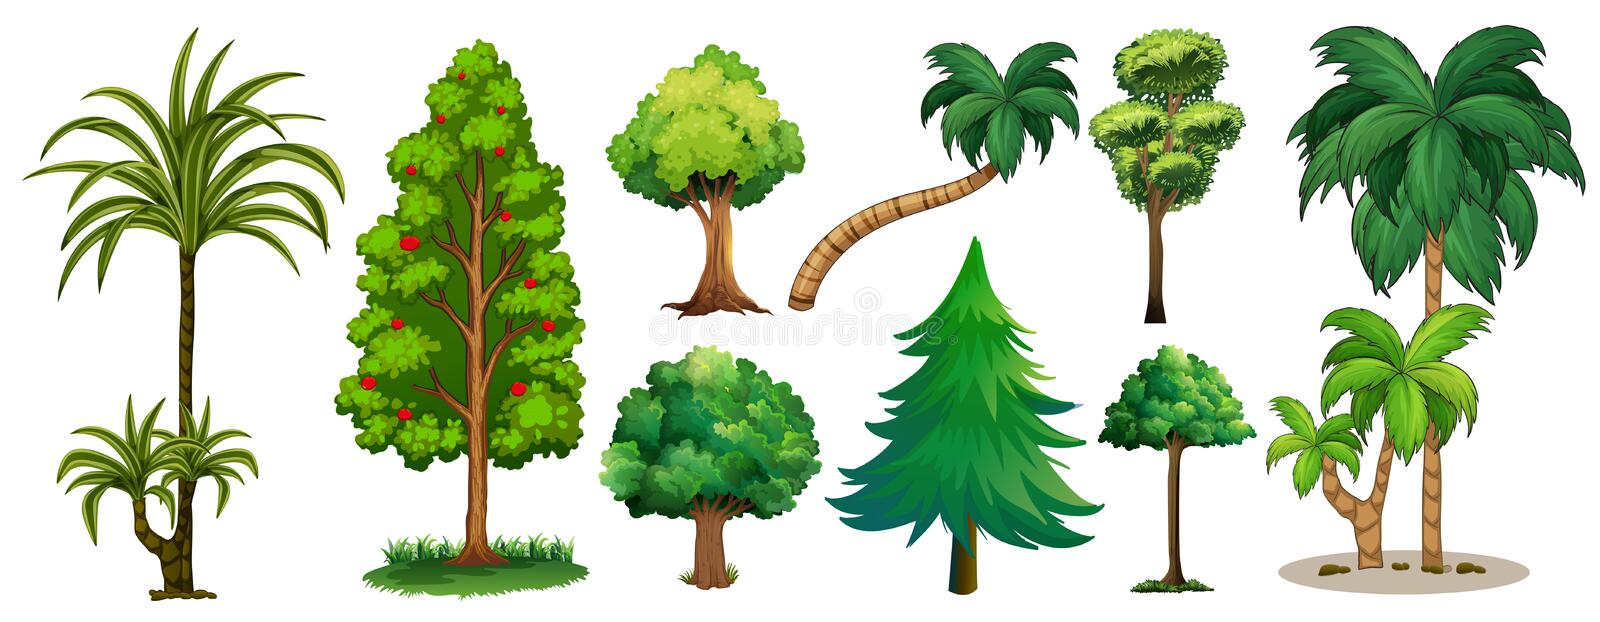 Different types of trees stock illustration